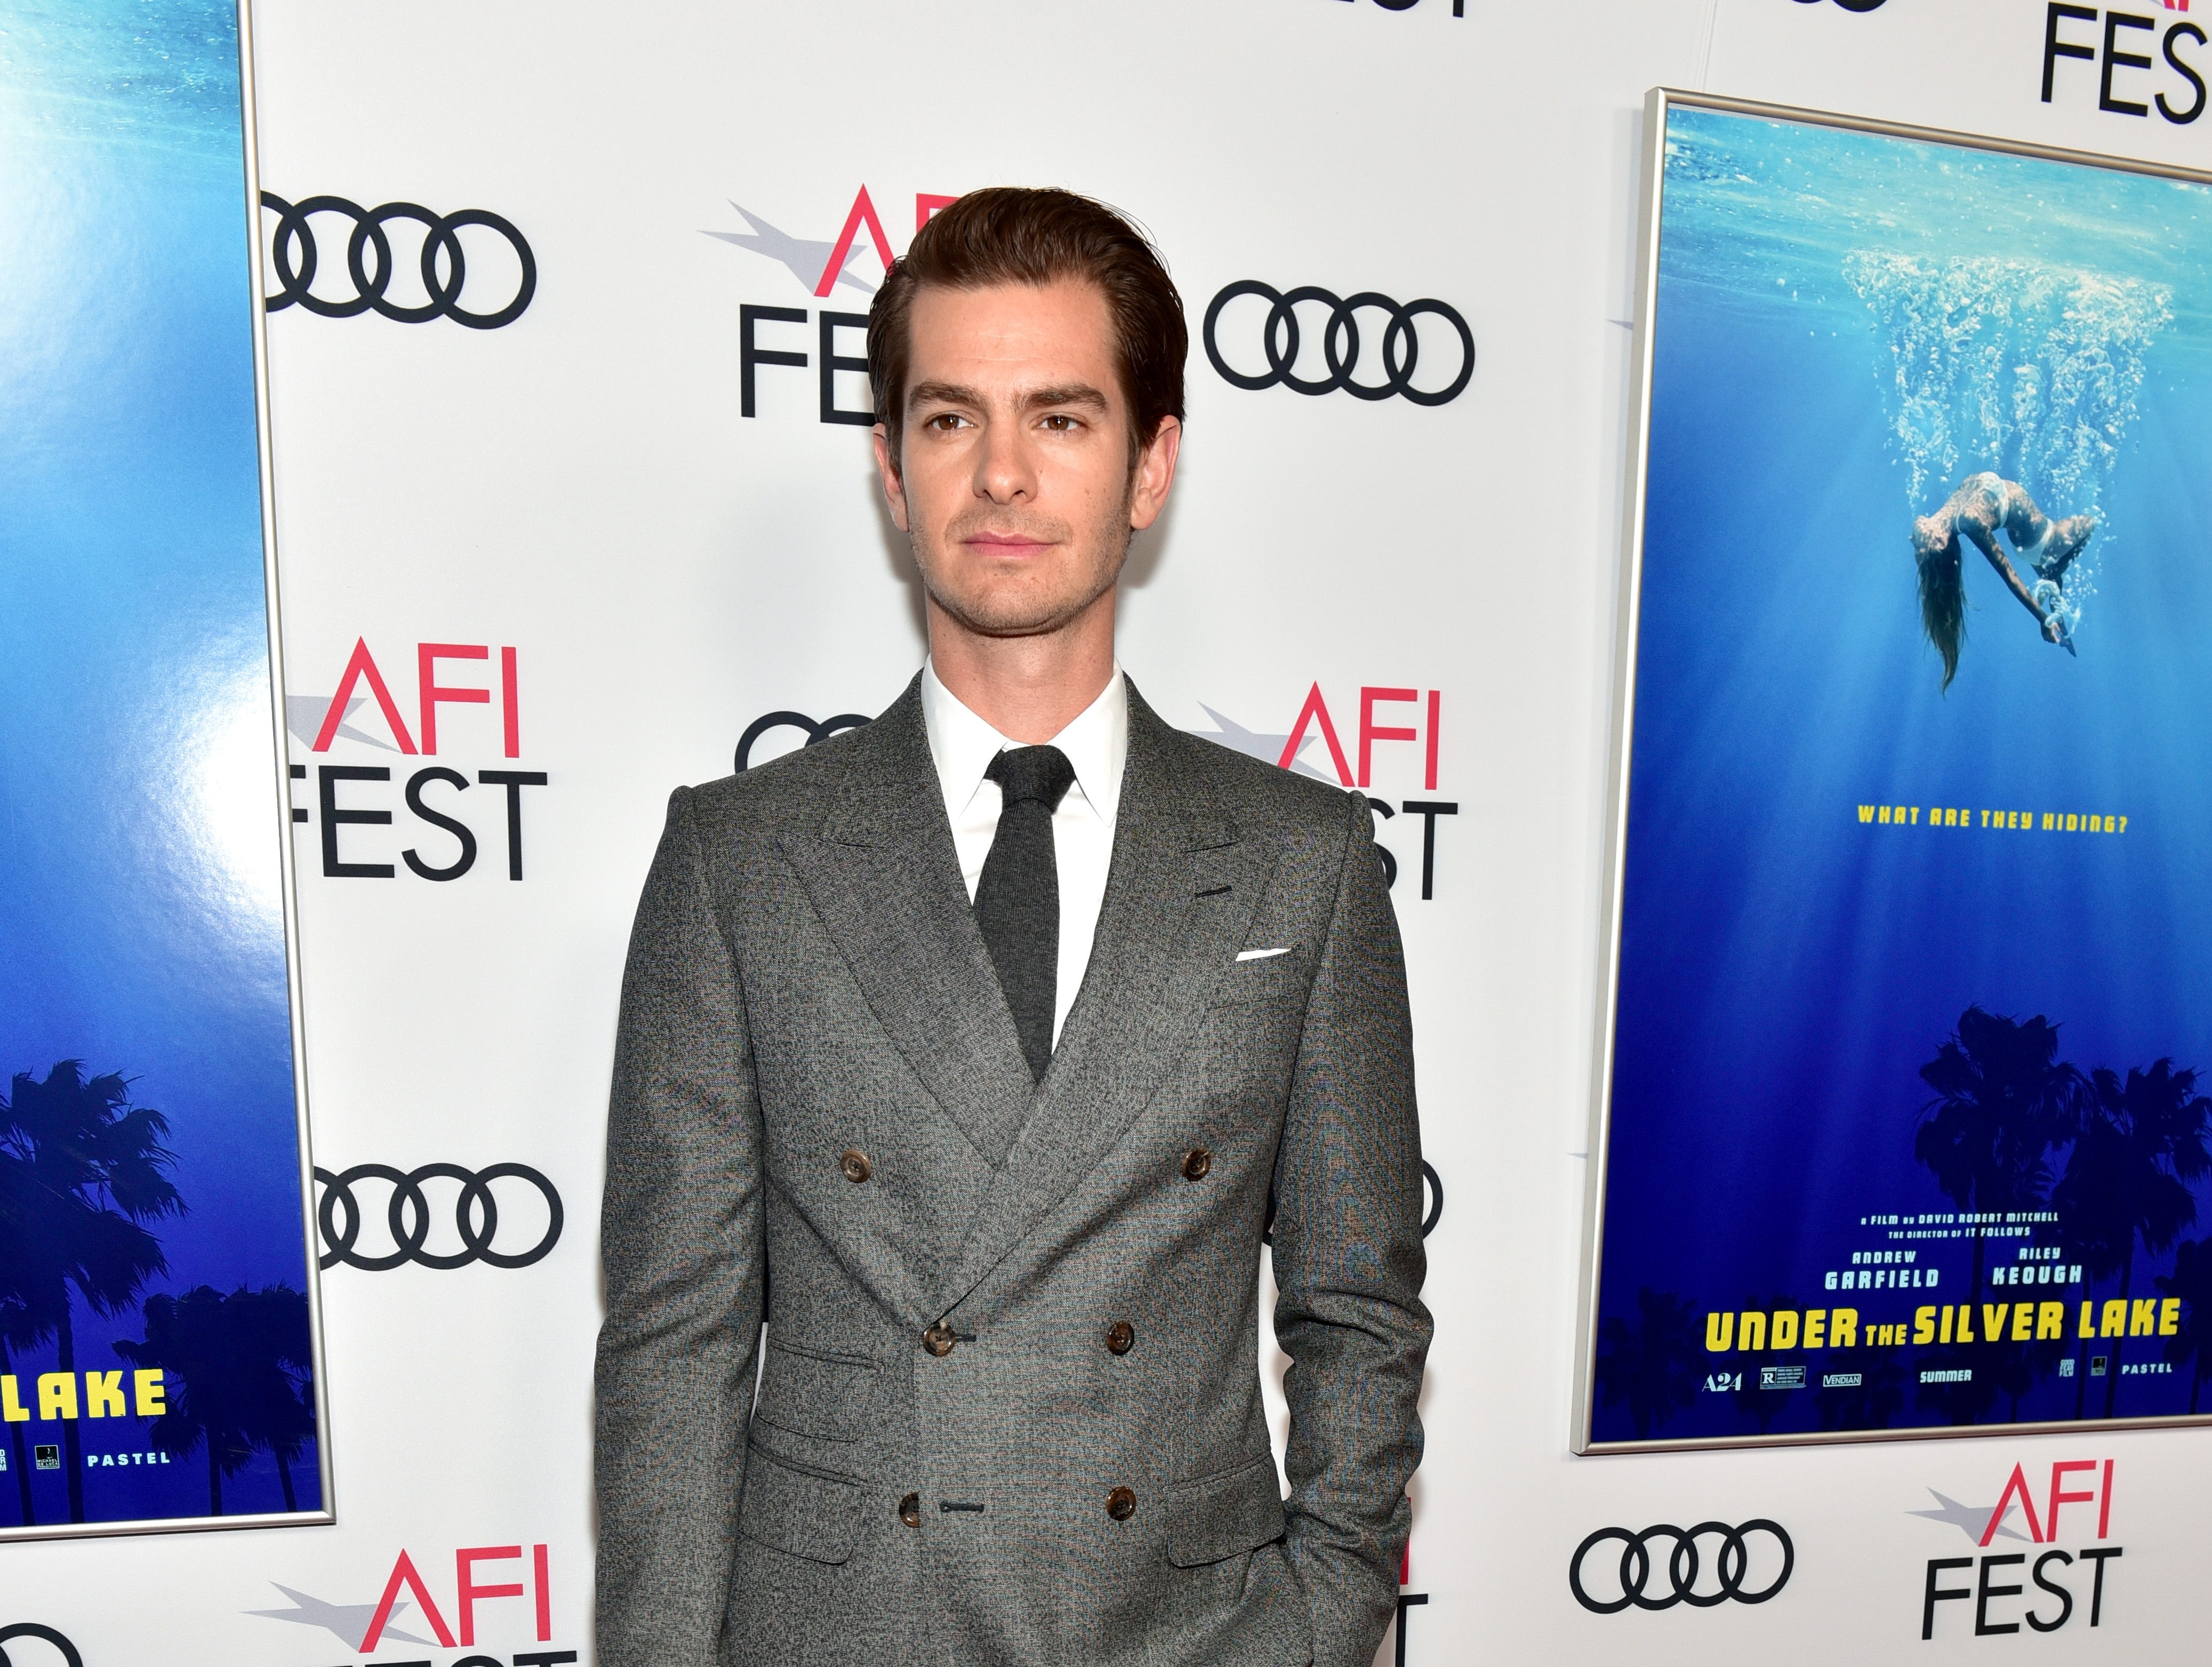 "HOLLYWOOD, CA - NOVEMBER 12:  Andrew Garfield attends the screening of ""Under The Silver Lake"" during AFI FEST 2018 presented by Audi at the Egyptian Theatre on November 12, 2018 in Hollywood, California.  (Photo by Rodin Eckenroth/Getty Images) ORG XMIT: 775252726 ORIG FILE ID: 1060847254"